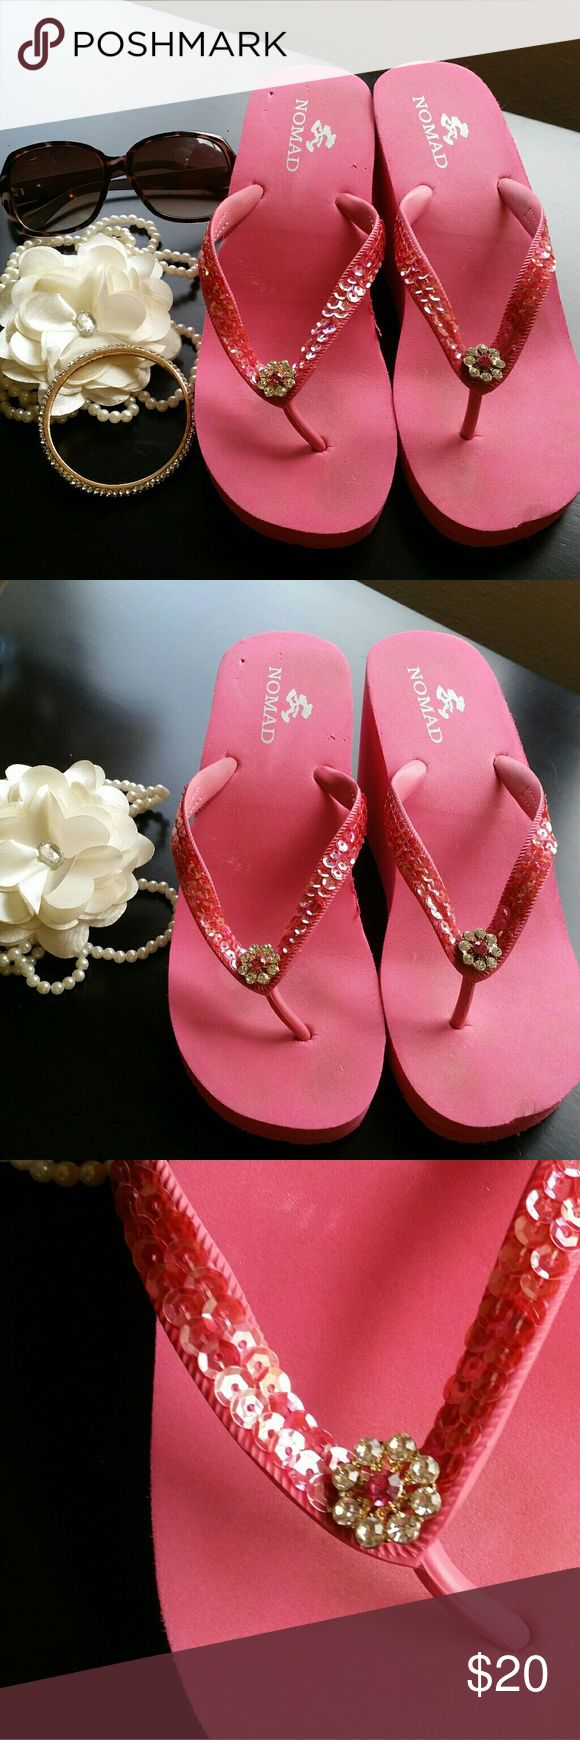 NWOT Platform Bling Flip Flops NWOT Nomad bling platform flip flops. Platforms are 🔥HOT🔥 this season! Never worn, minor dings from storage. Still has stickers on the bottom! Size 8. Platform is 3.5 inches high. Nomad Shoes Sandals